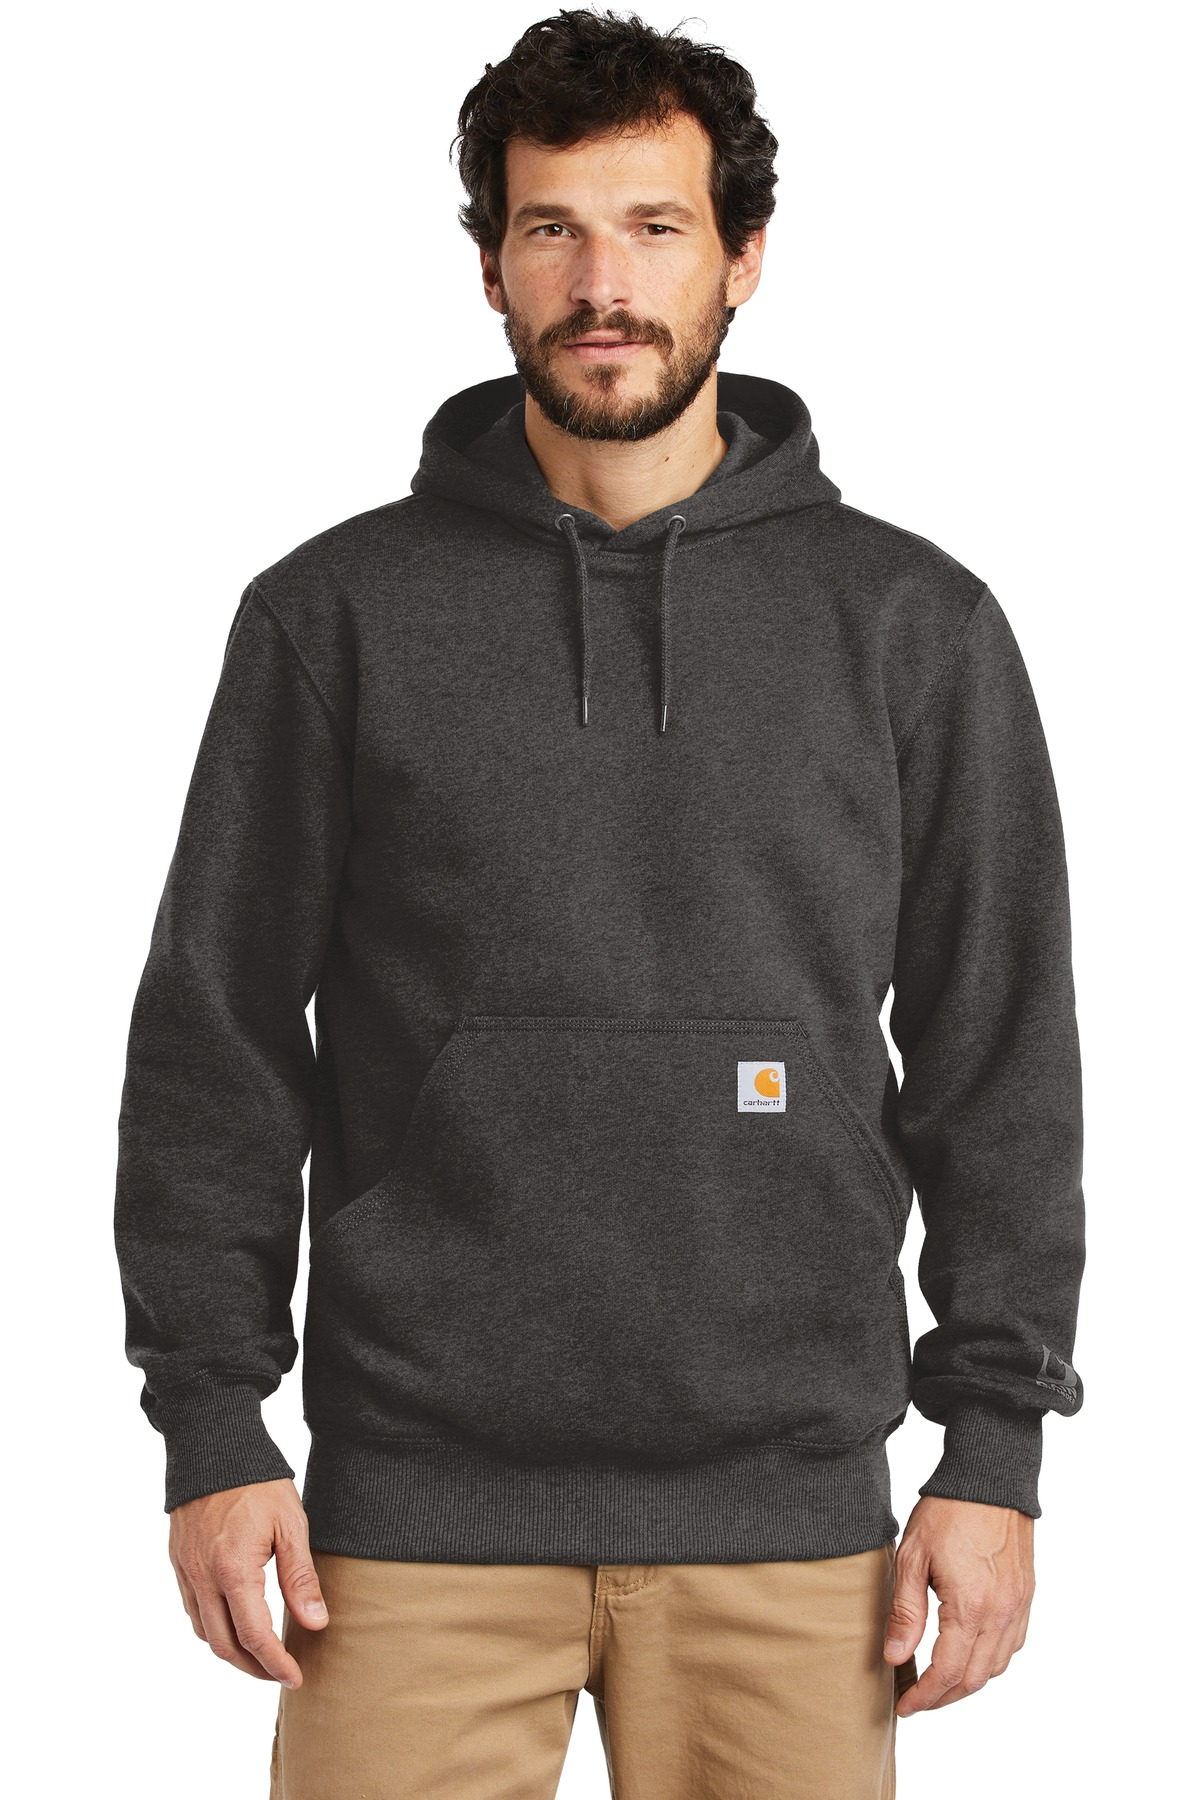 Carhartt  ®  Rain Defender  ®  Paxton Heavyweight Hooded Sweatshirt. CT100615 - Carbon Heather